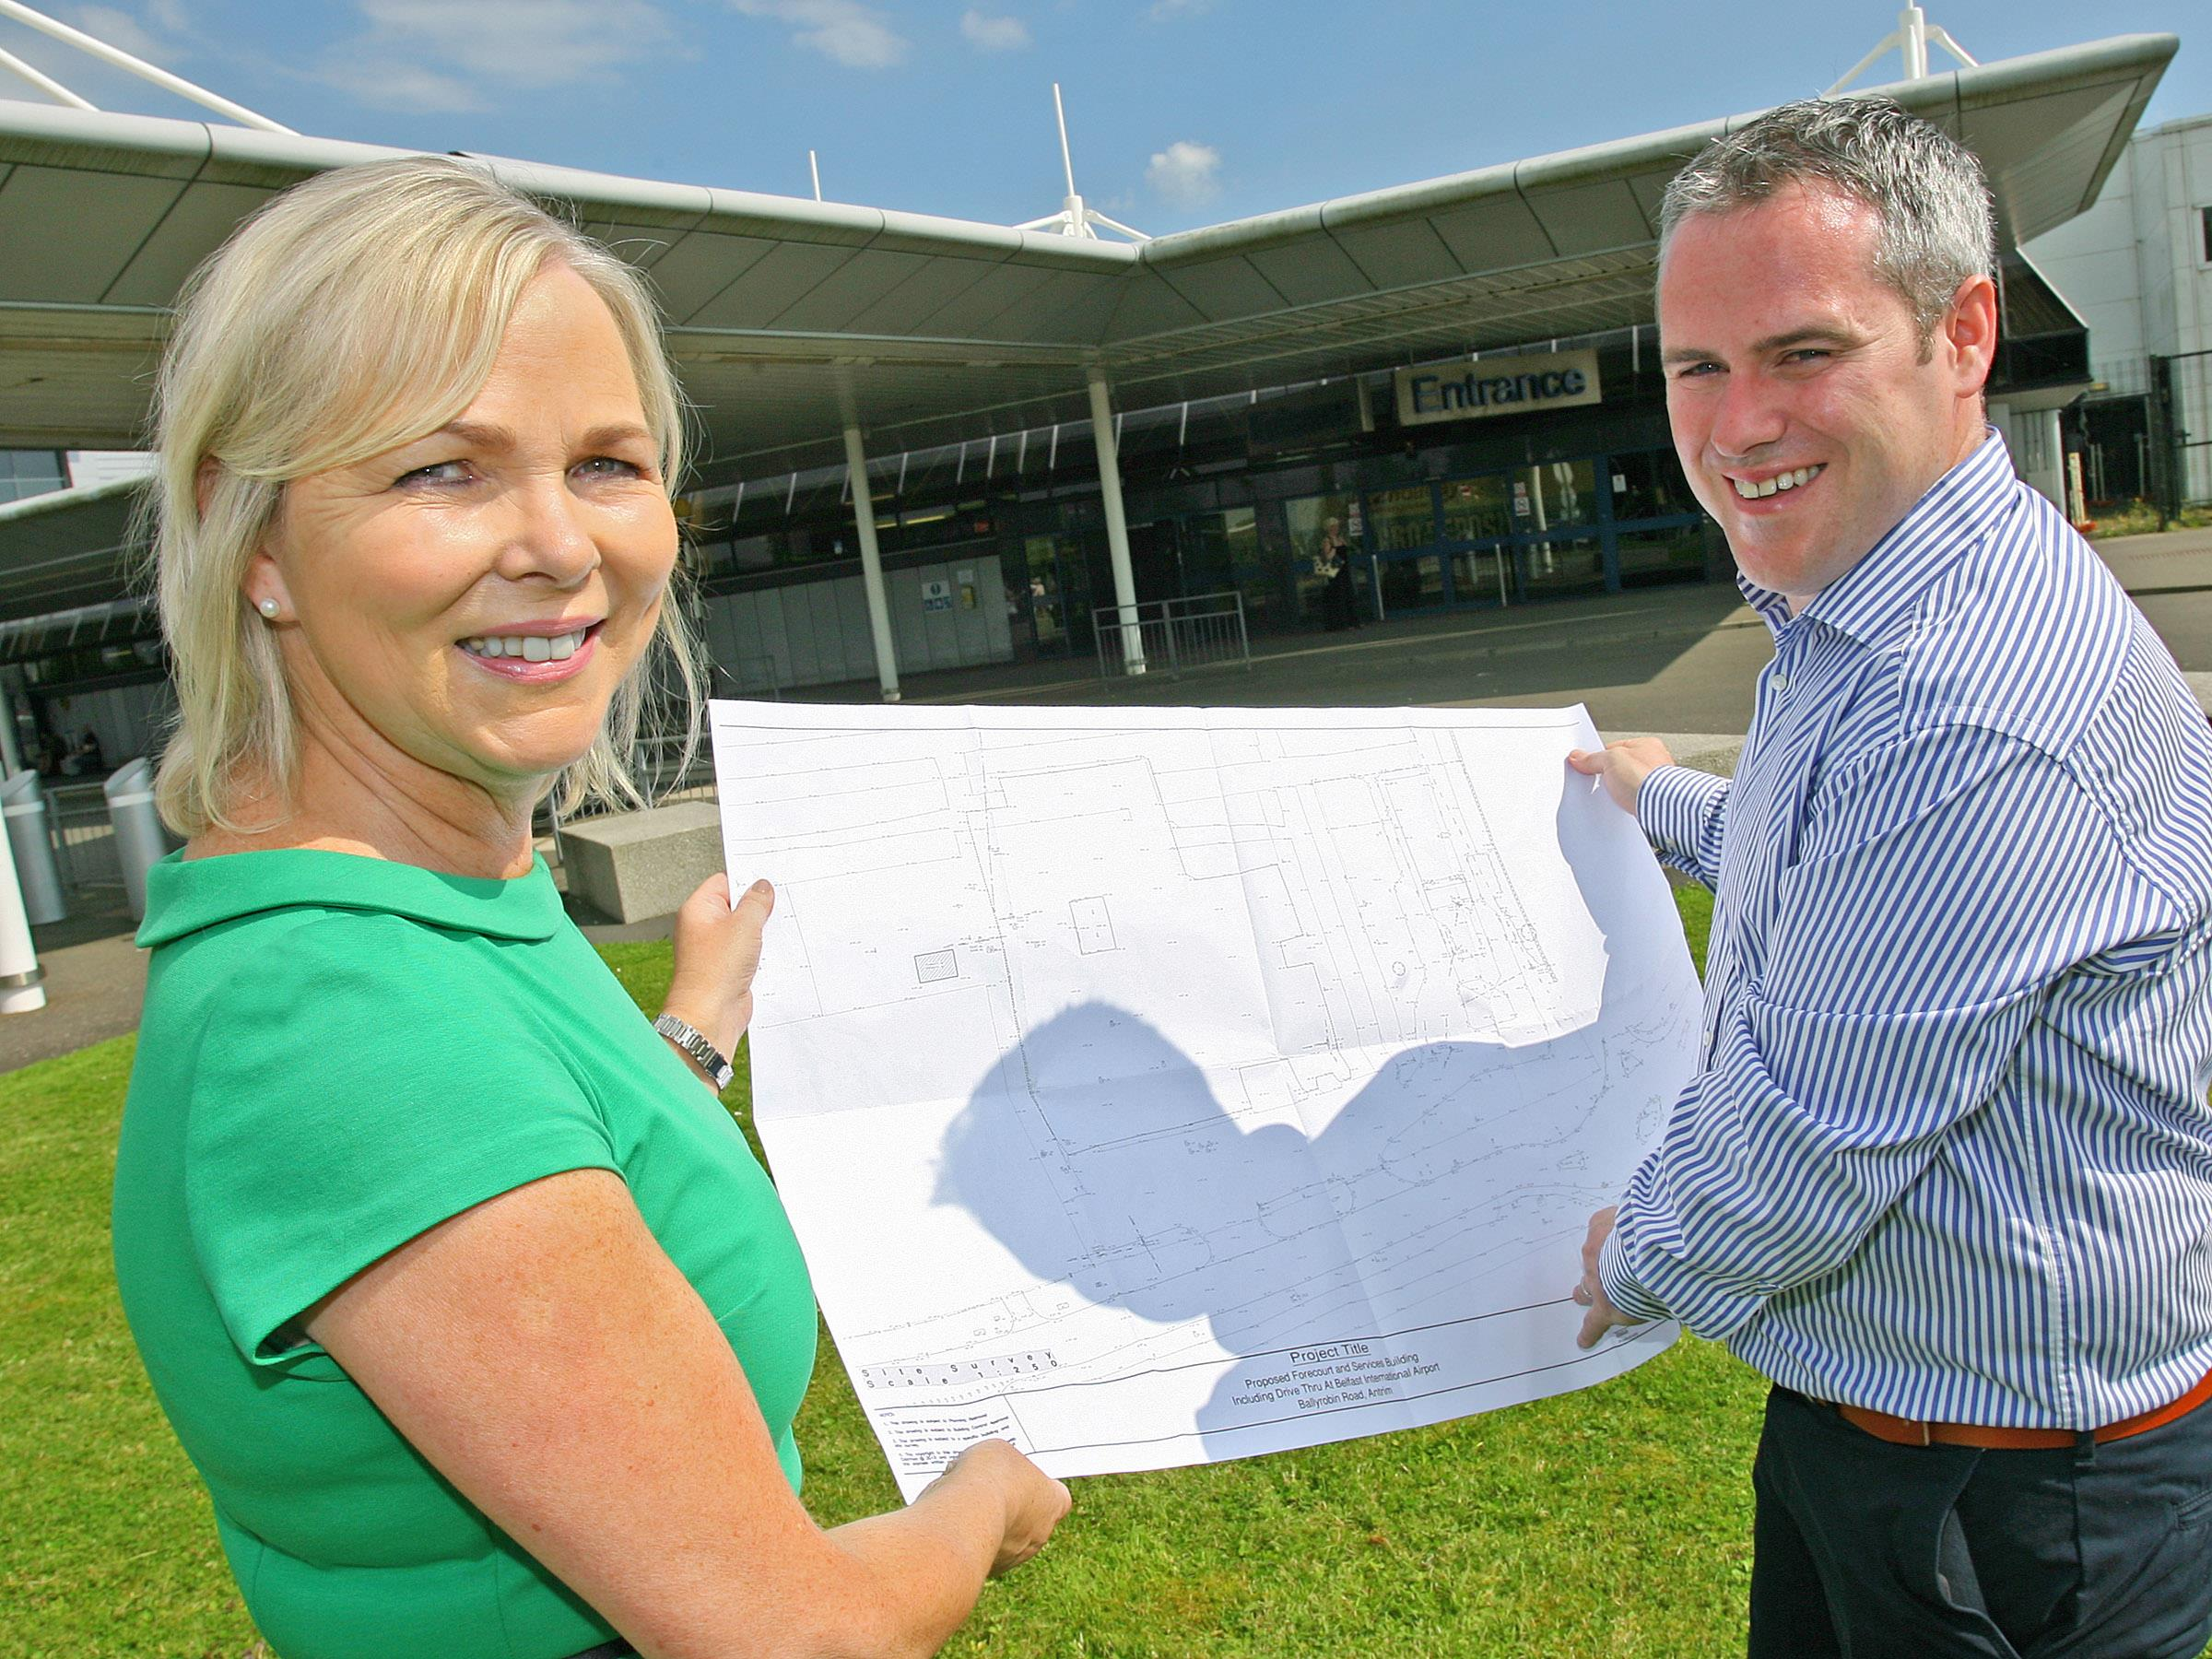 Council gives go-ahead for £2.5 million airport forecourt and retail development